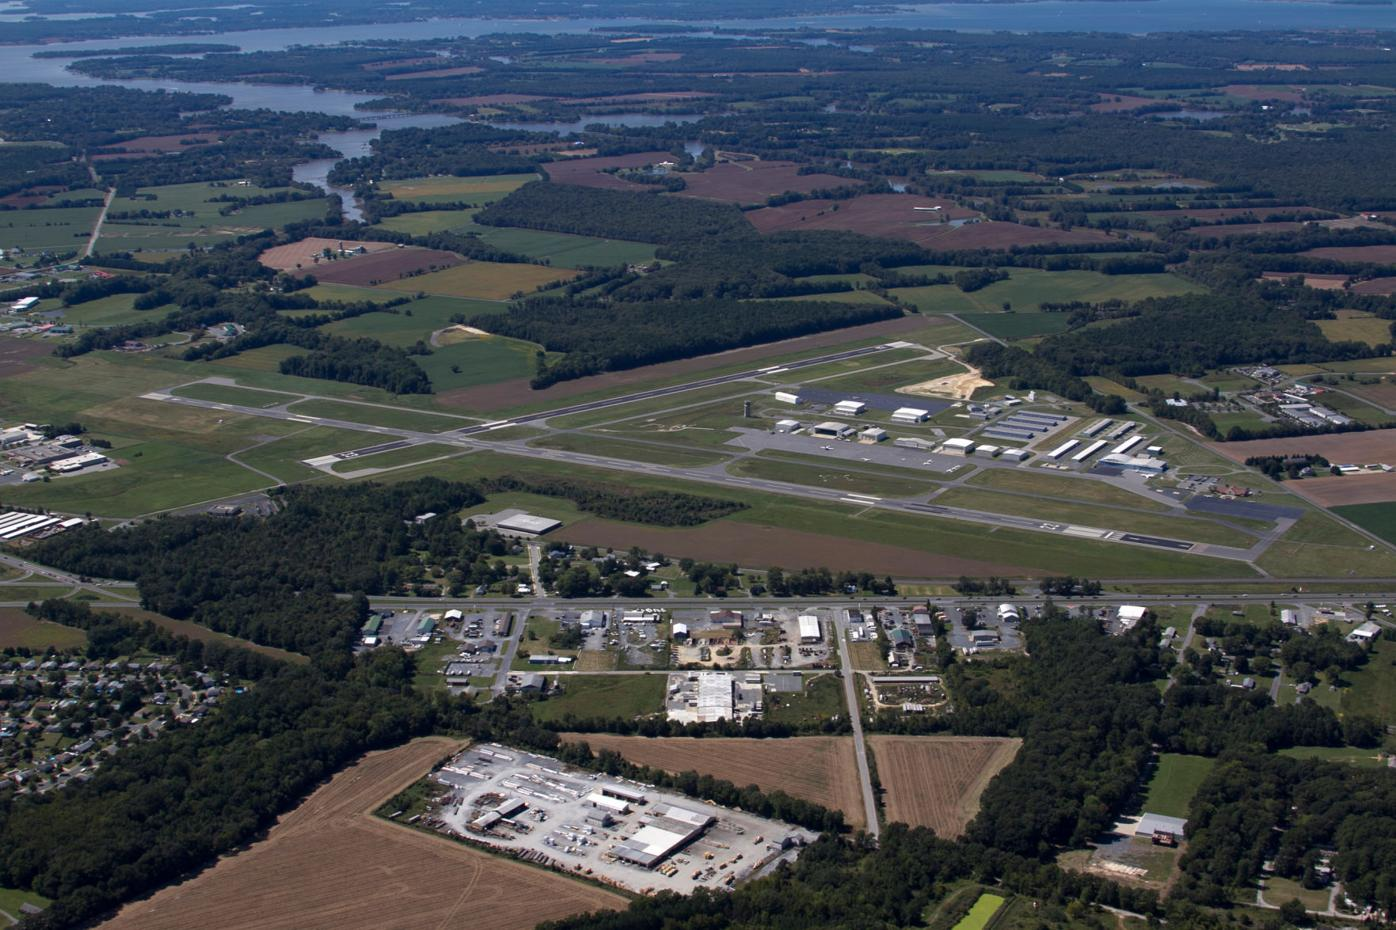 Easton Airport's tower program may be in jeopardy